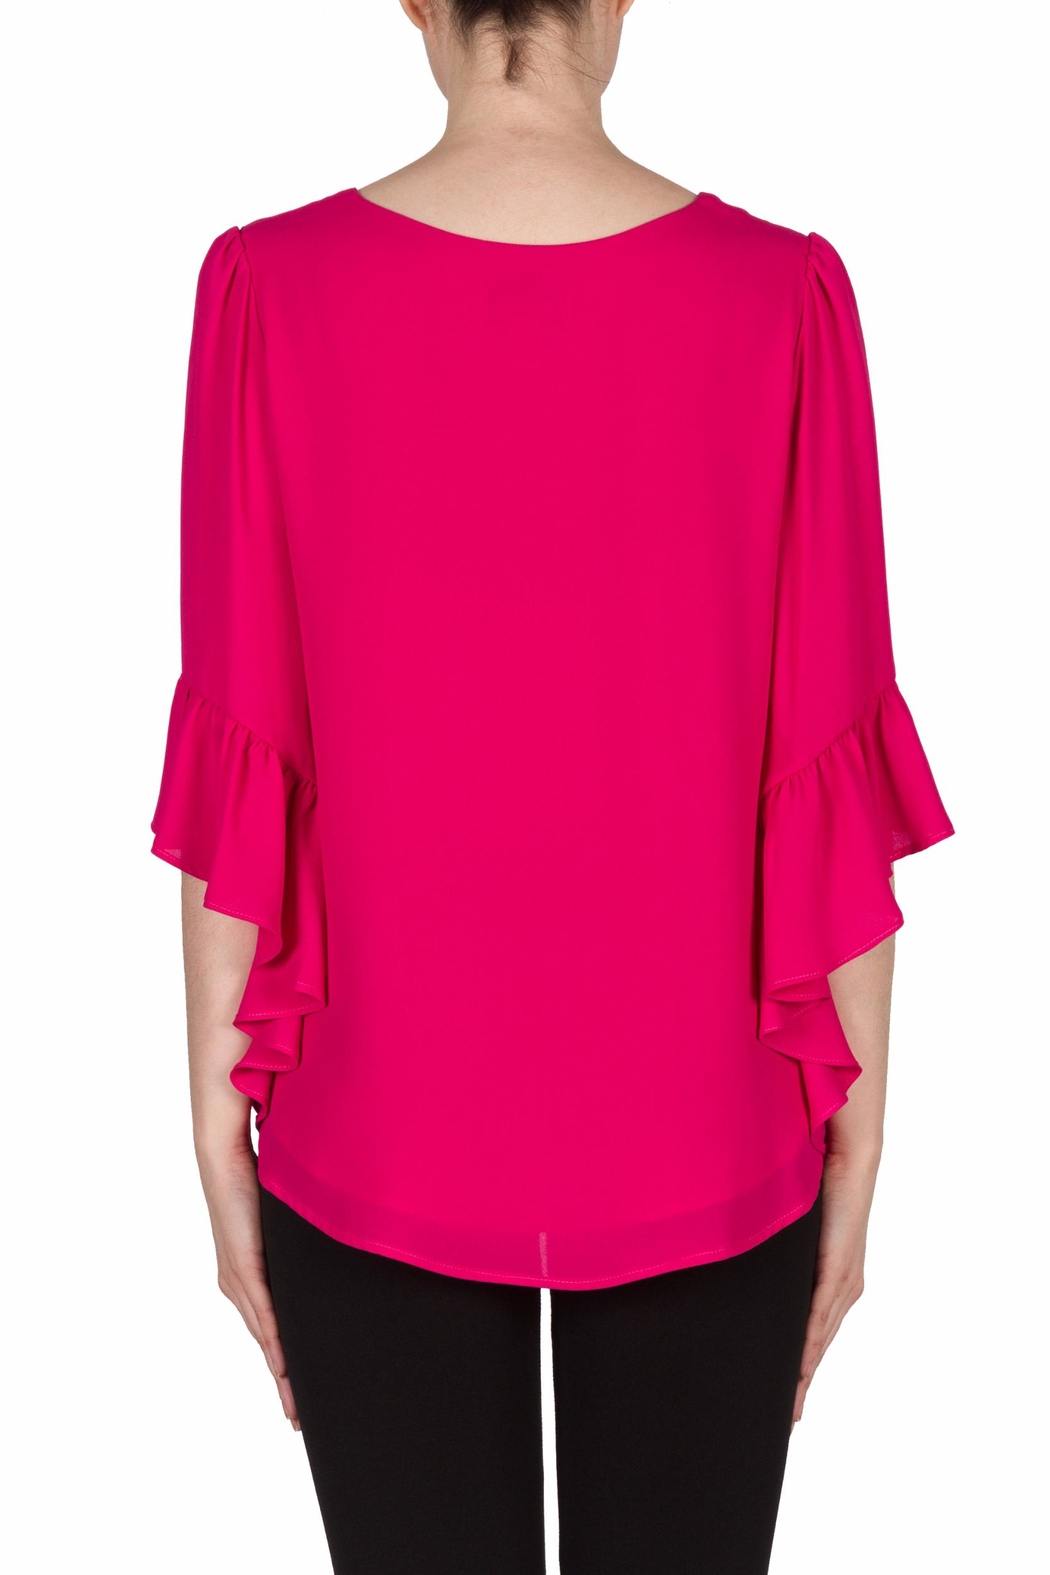 Joseph Ribkoff Magenta Bell Sleeve Top - Side Cropped Image